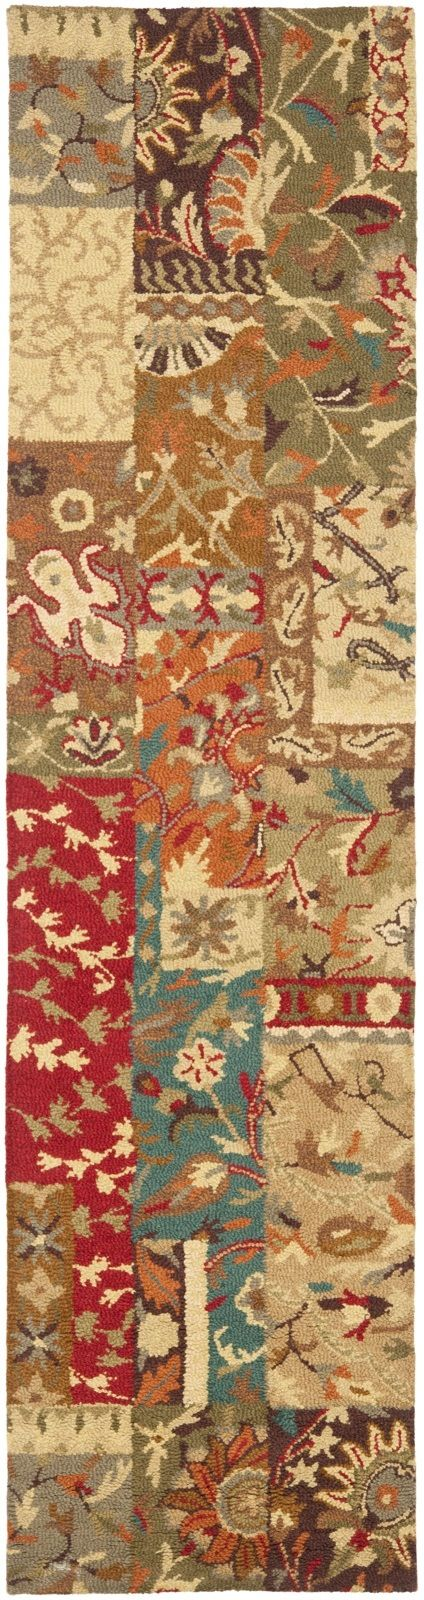 safavieh roslyn country & floral area rug collection